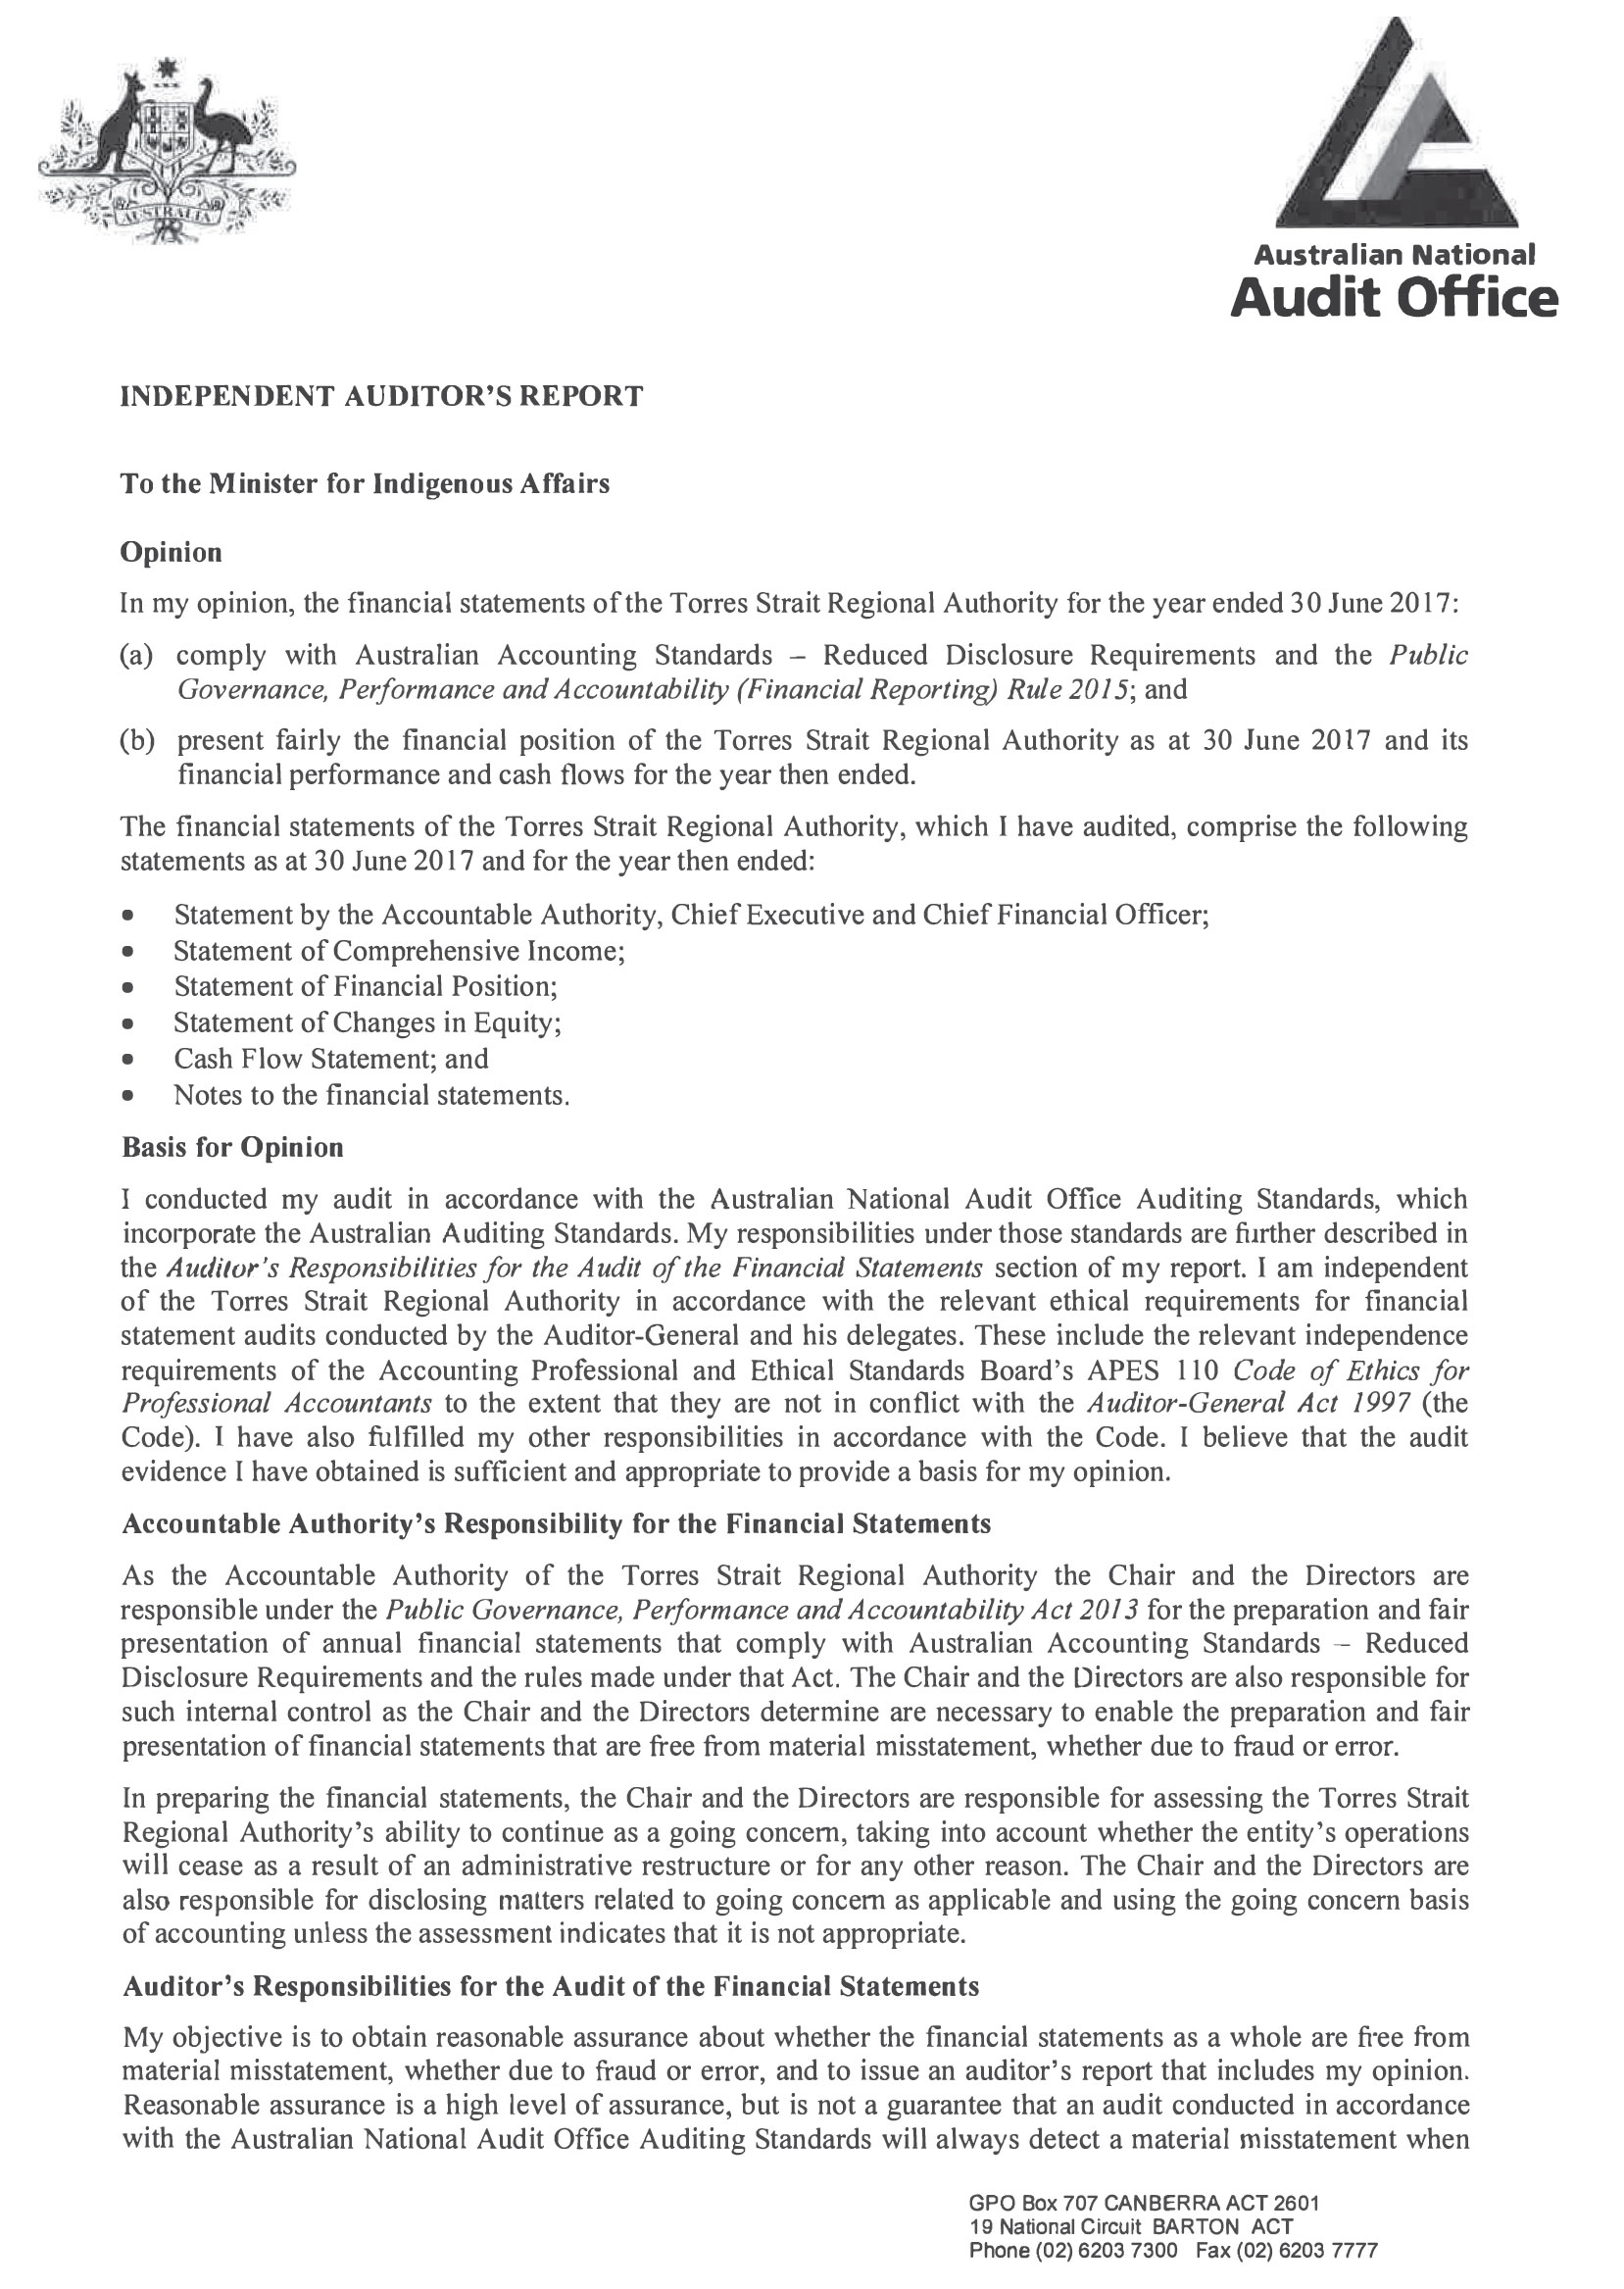 a photograph of Independent Auditor's Report (page 1)